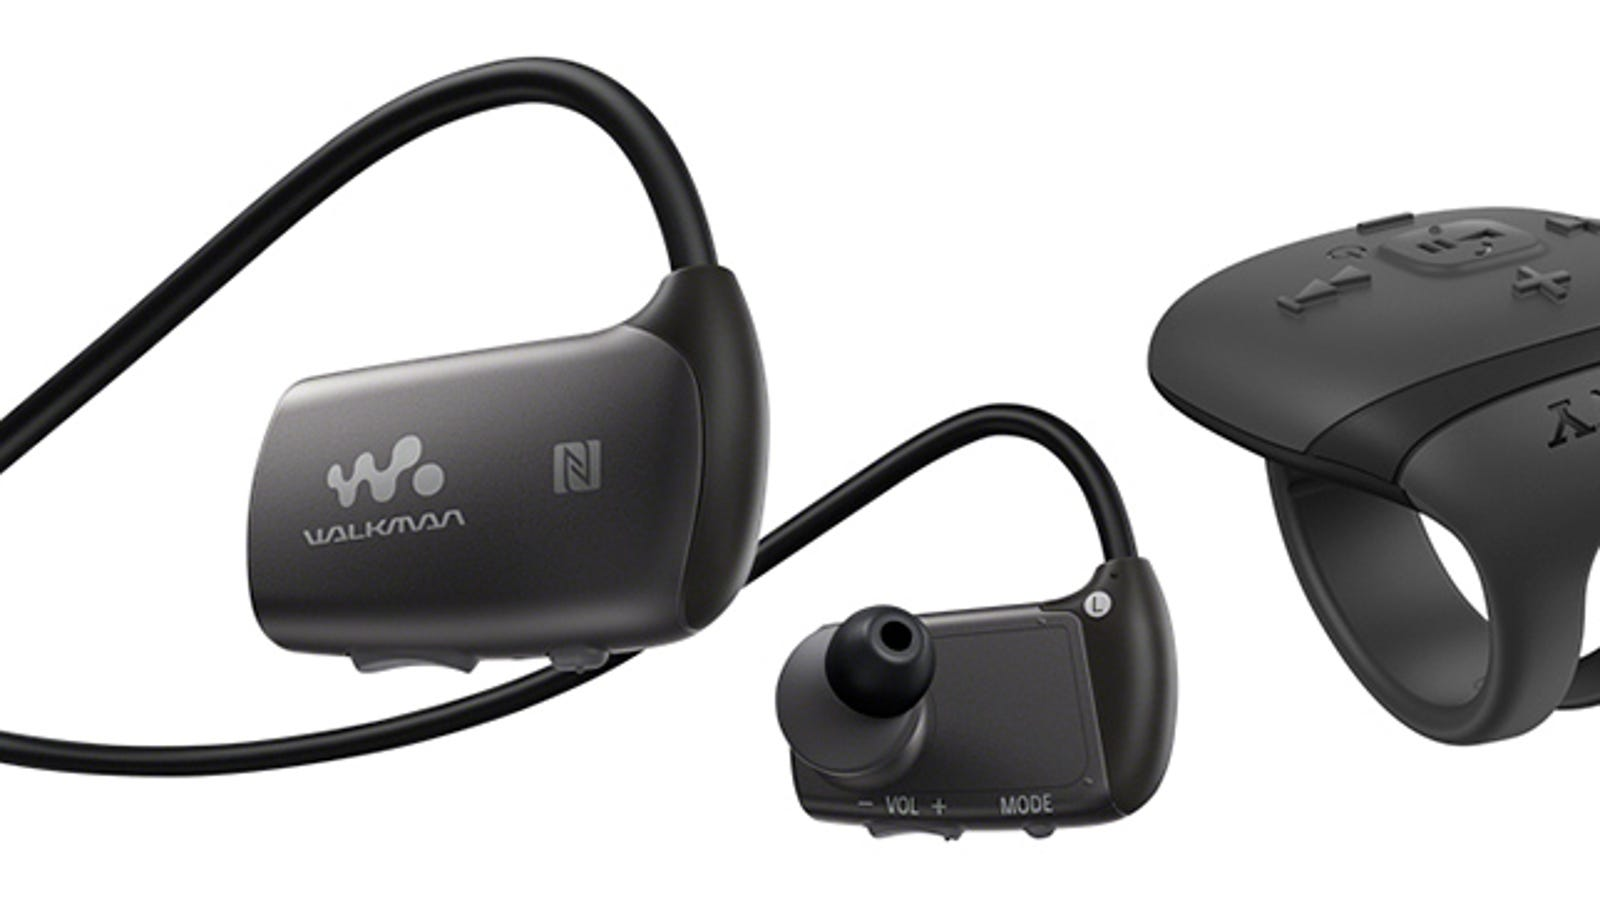 lg wireless earbuds hbs 730